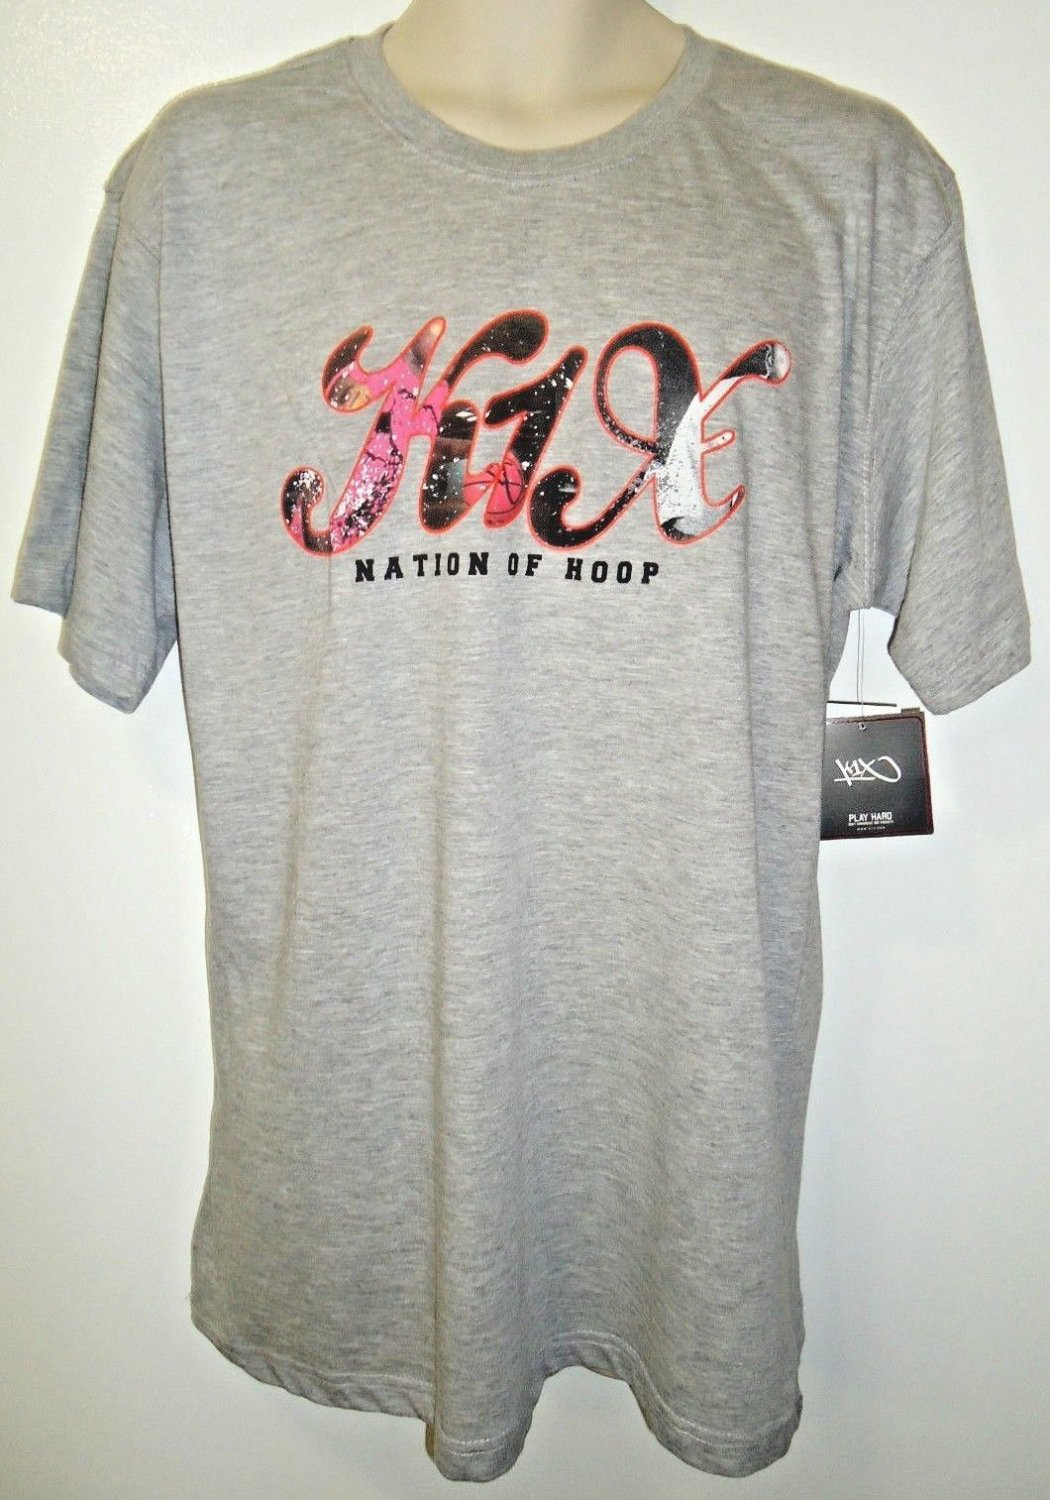 K1X - NATION OF HOOP - STREET - BASKETBALL - TEE - LARGE - NEW - GRAY - T-SHIRT